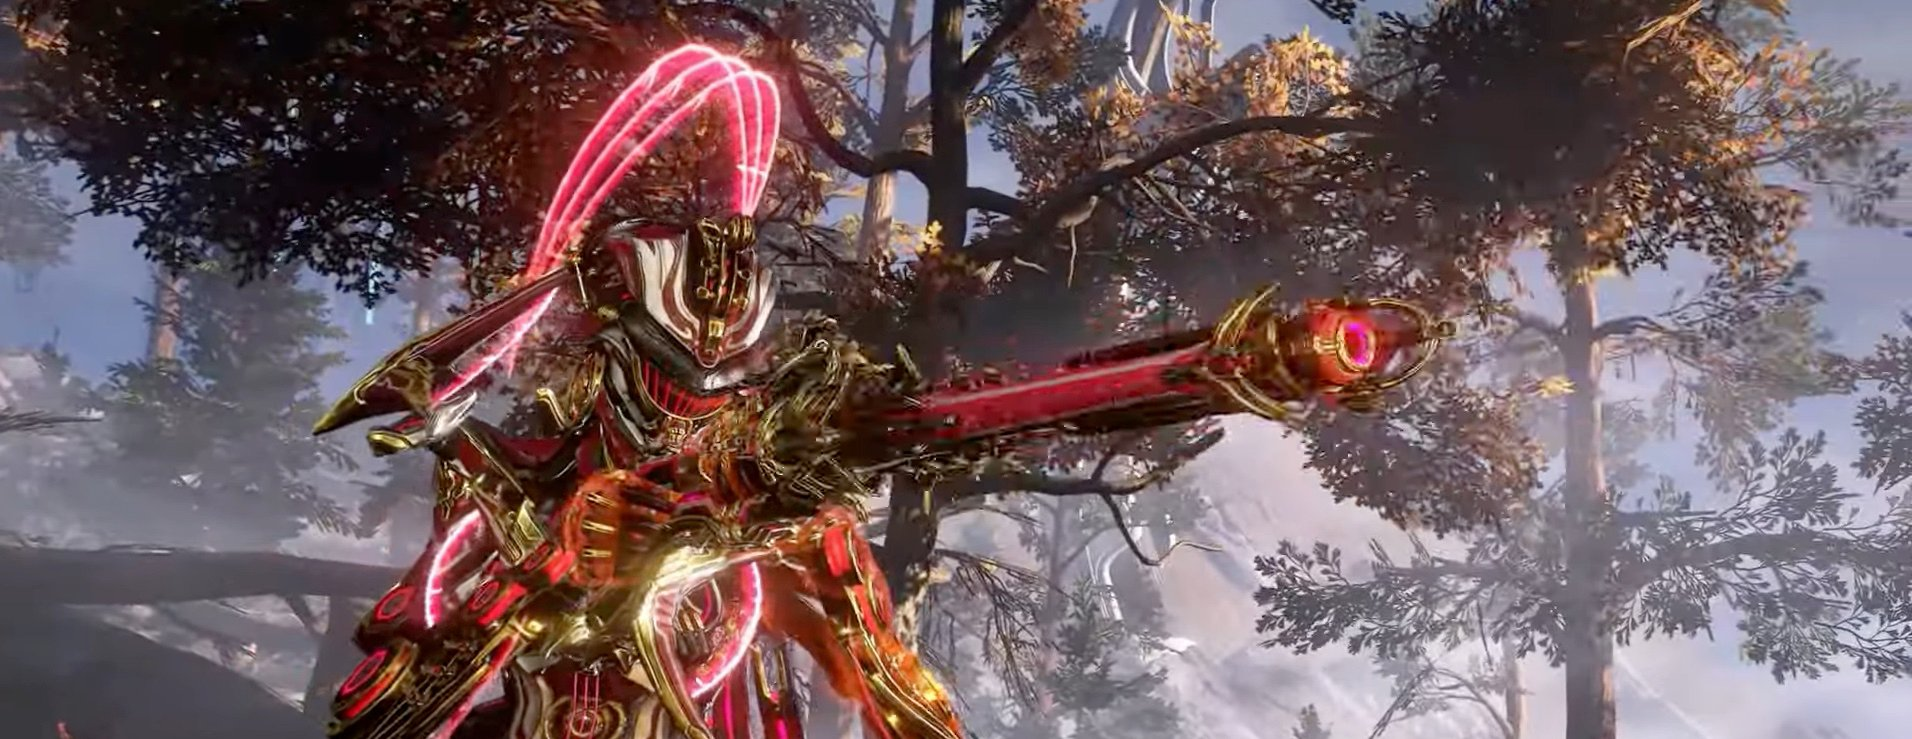 Octavia Prime and Sevagoth are coming soon to Warframe screenshot